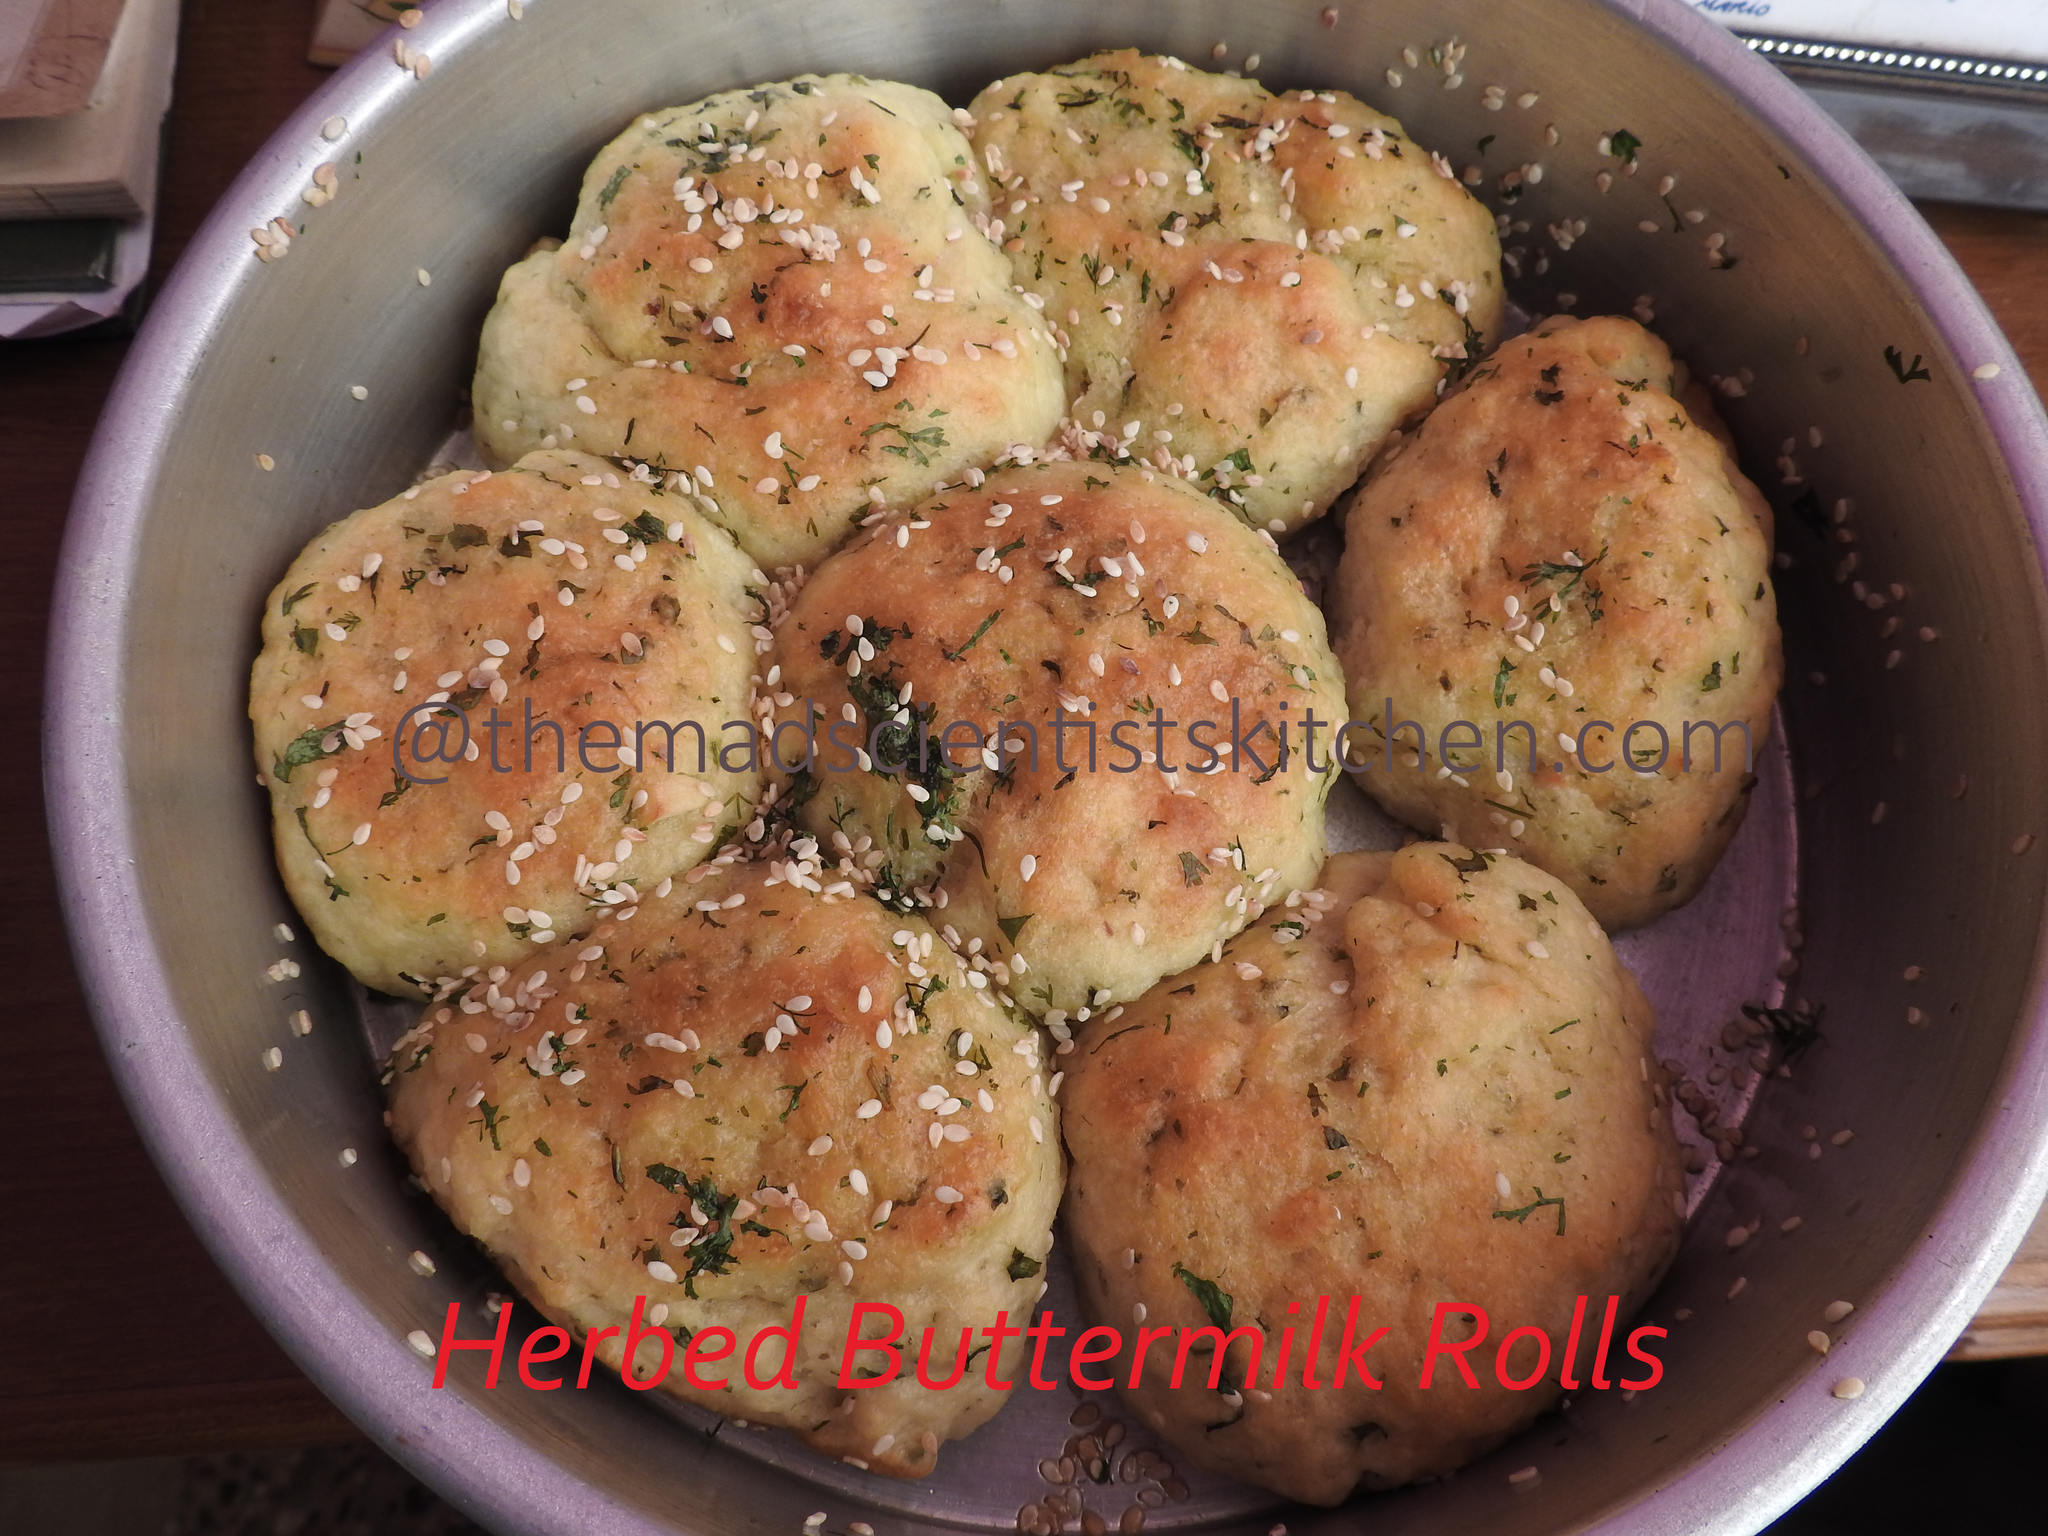 Herbed Buttermilk Rolls